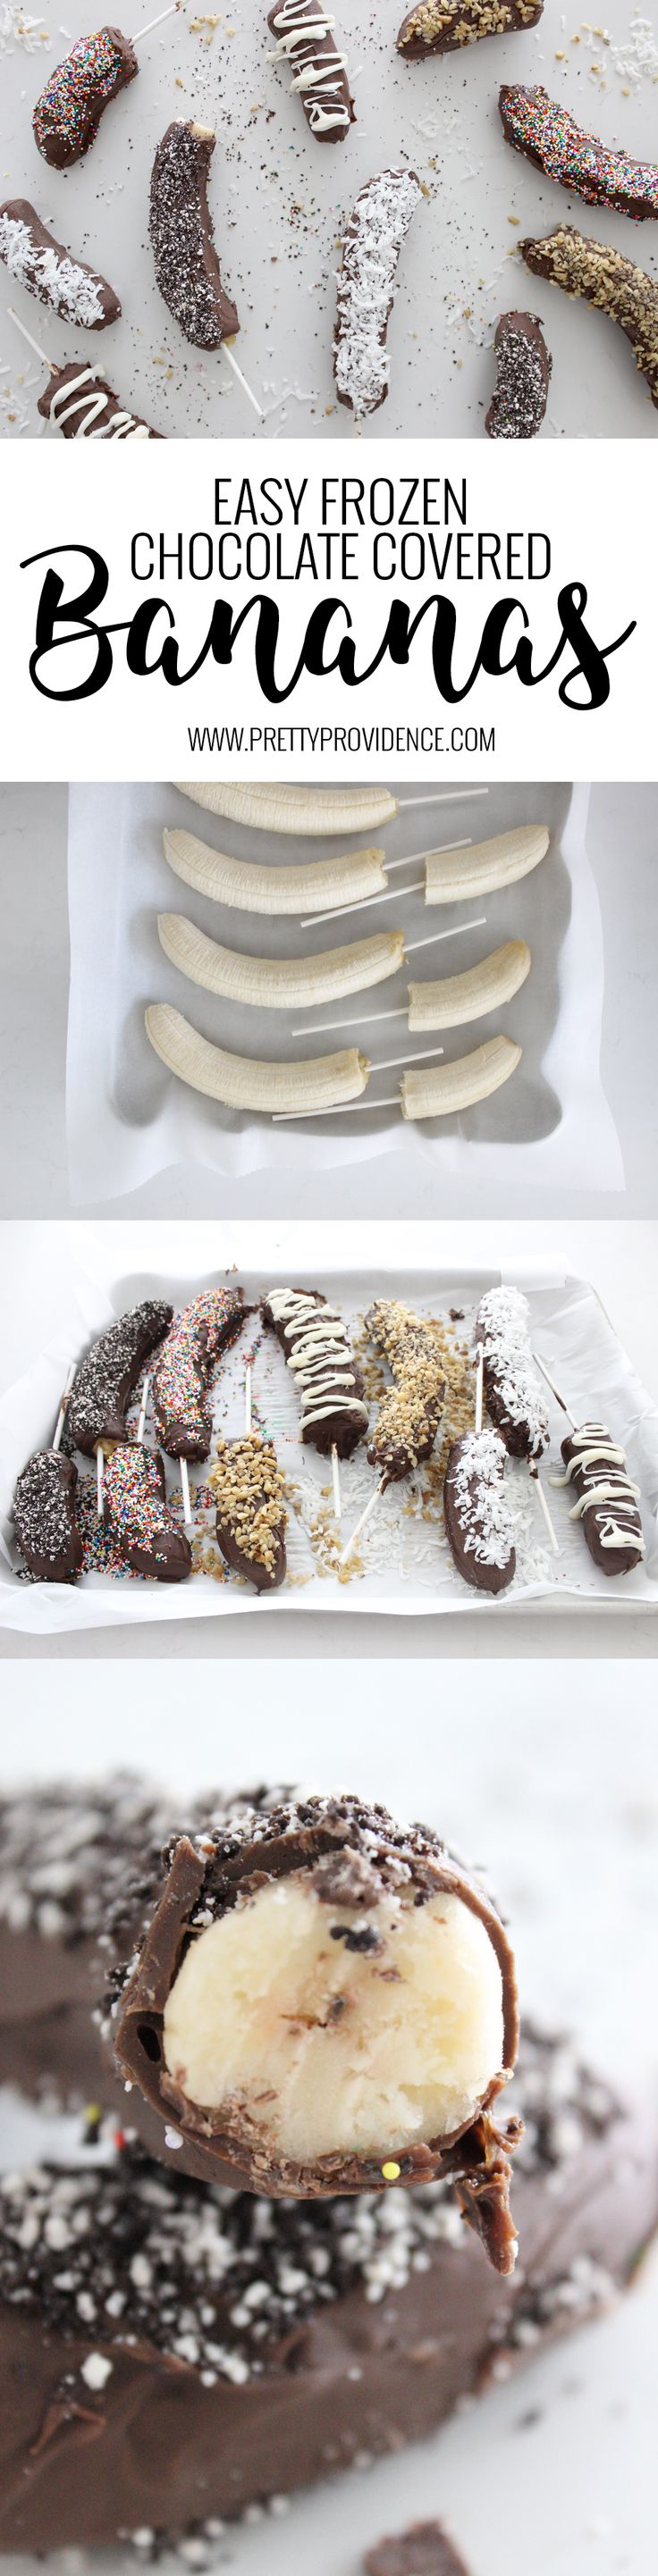 how to make frozen chocolate